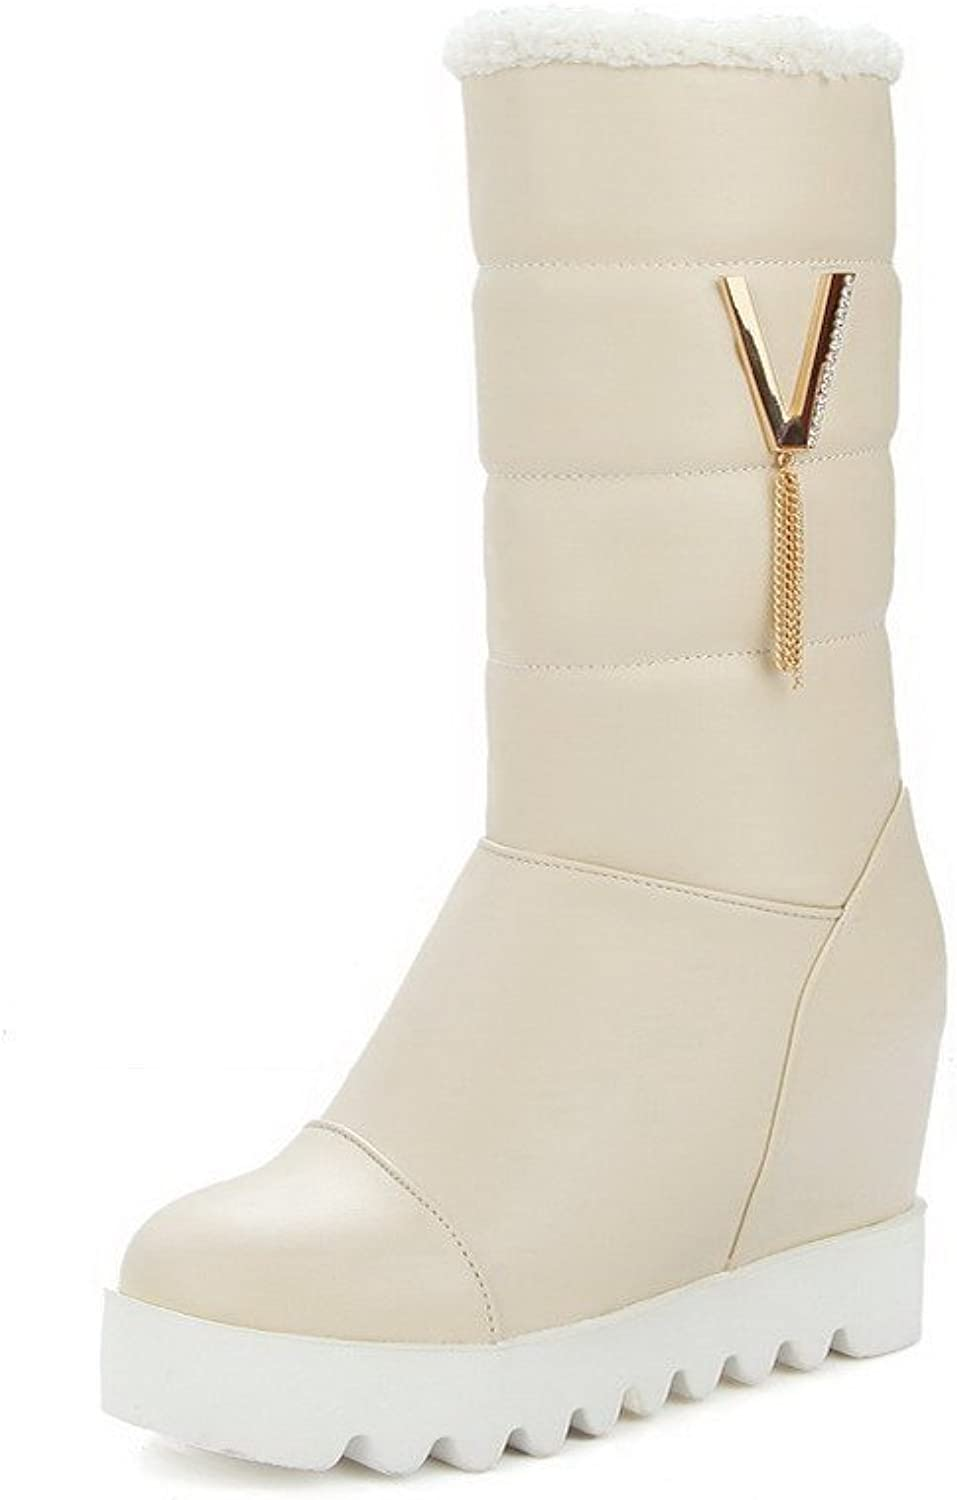 WeenFashion Women's High-Heels Soft Material Mid-Top Solid Pull-On Boots